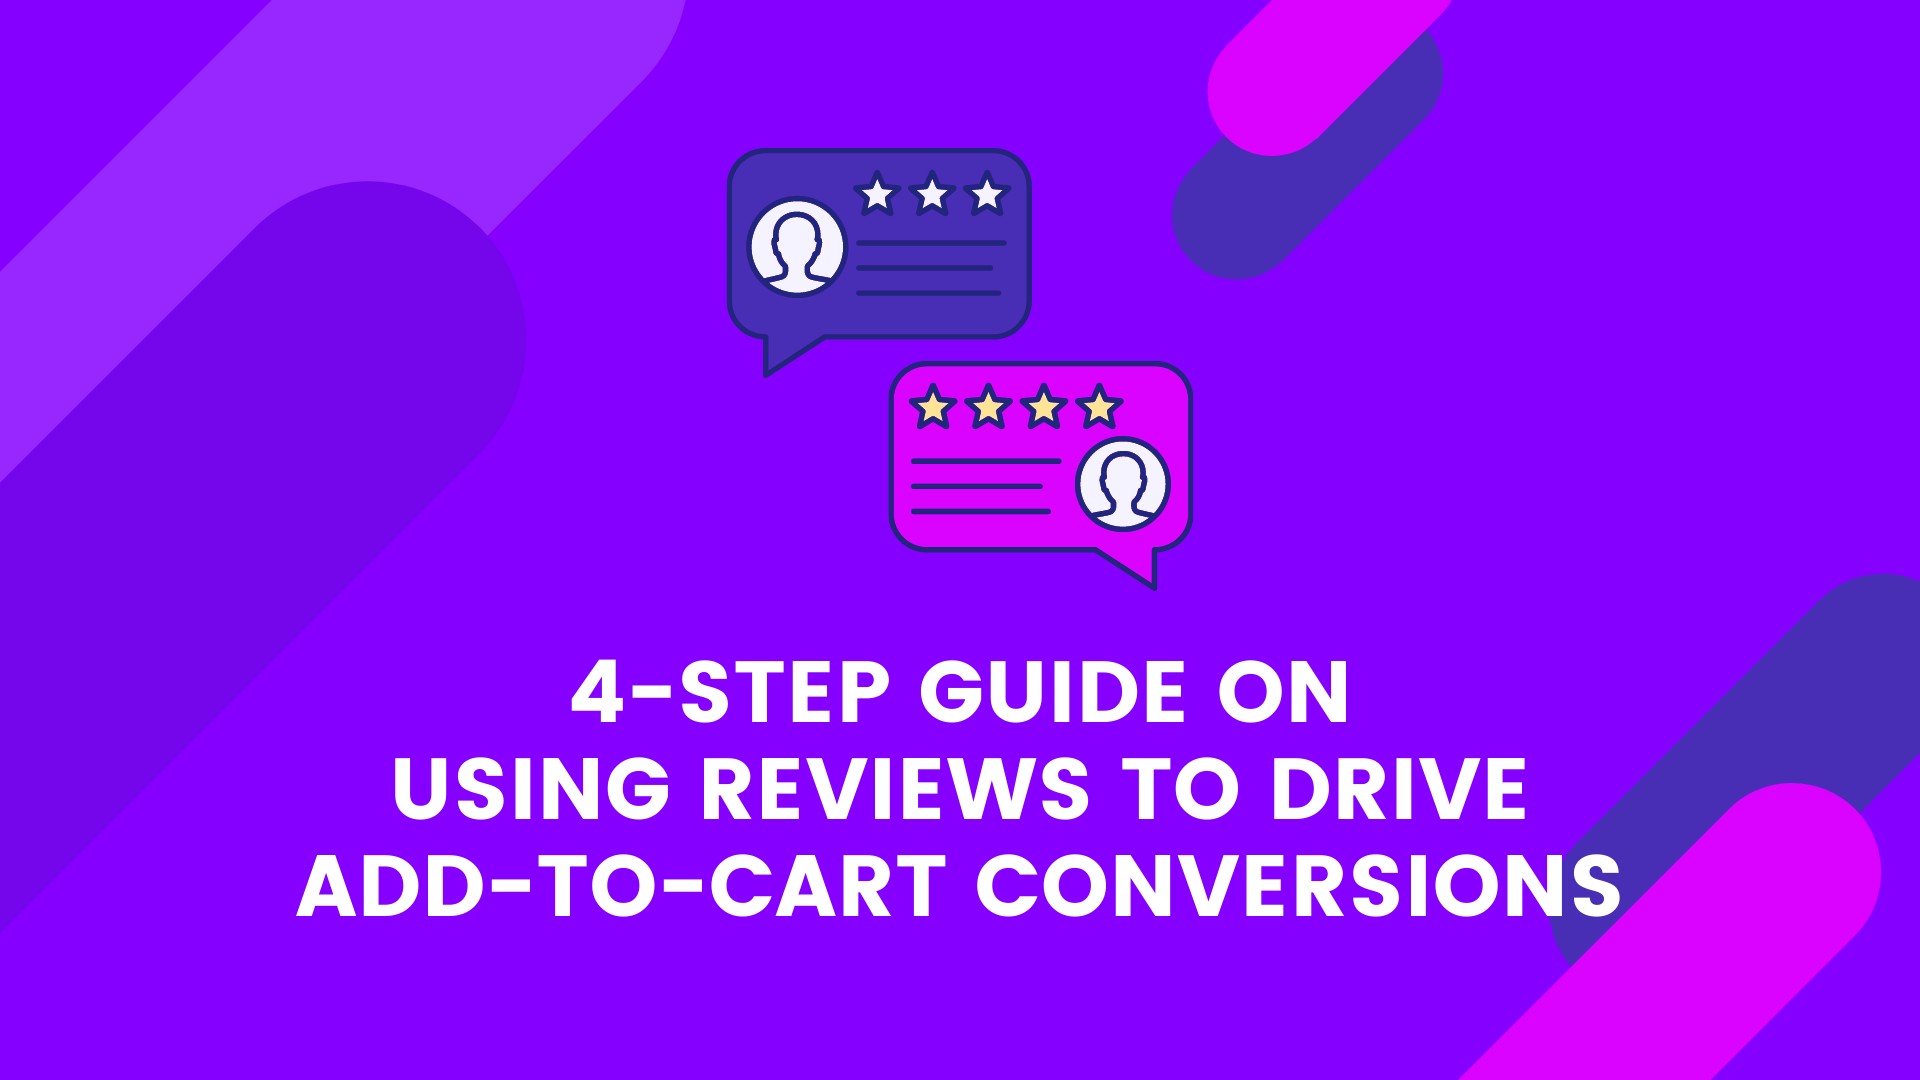 4-Step Guide on Using Reviews to Drive Add-to-Cart Conversions